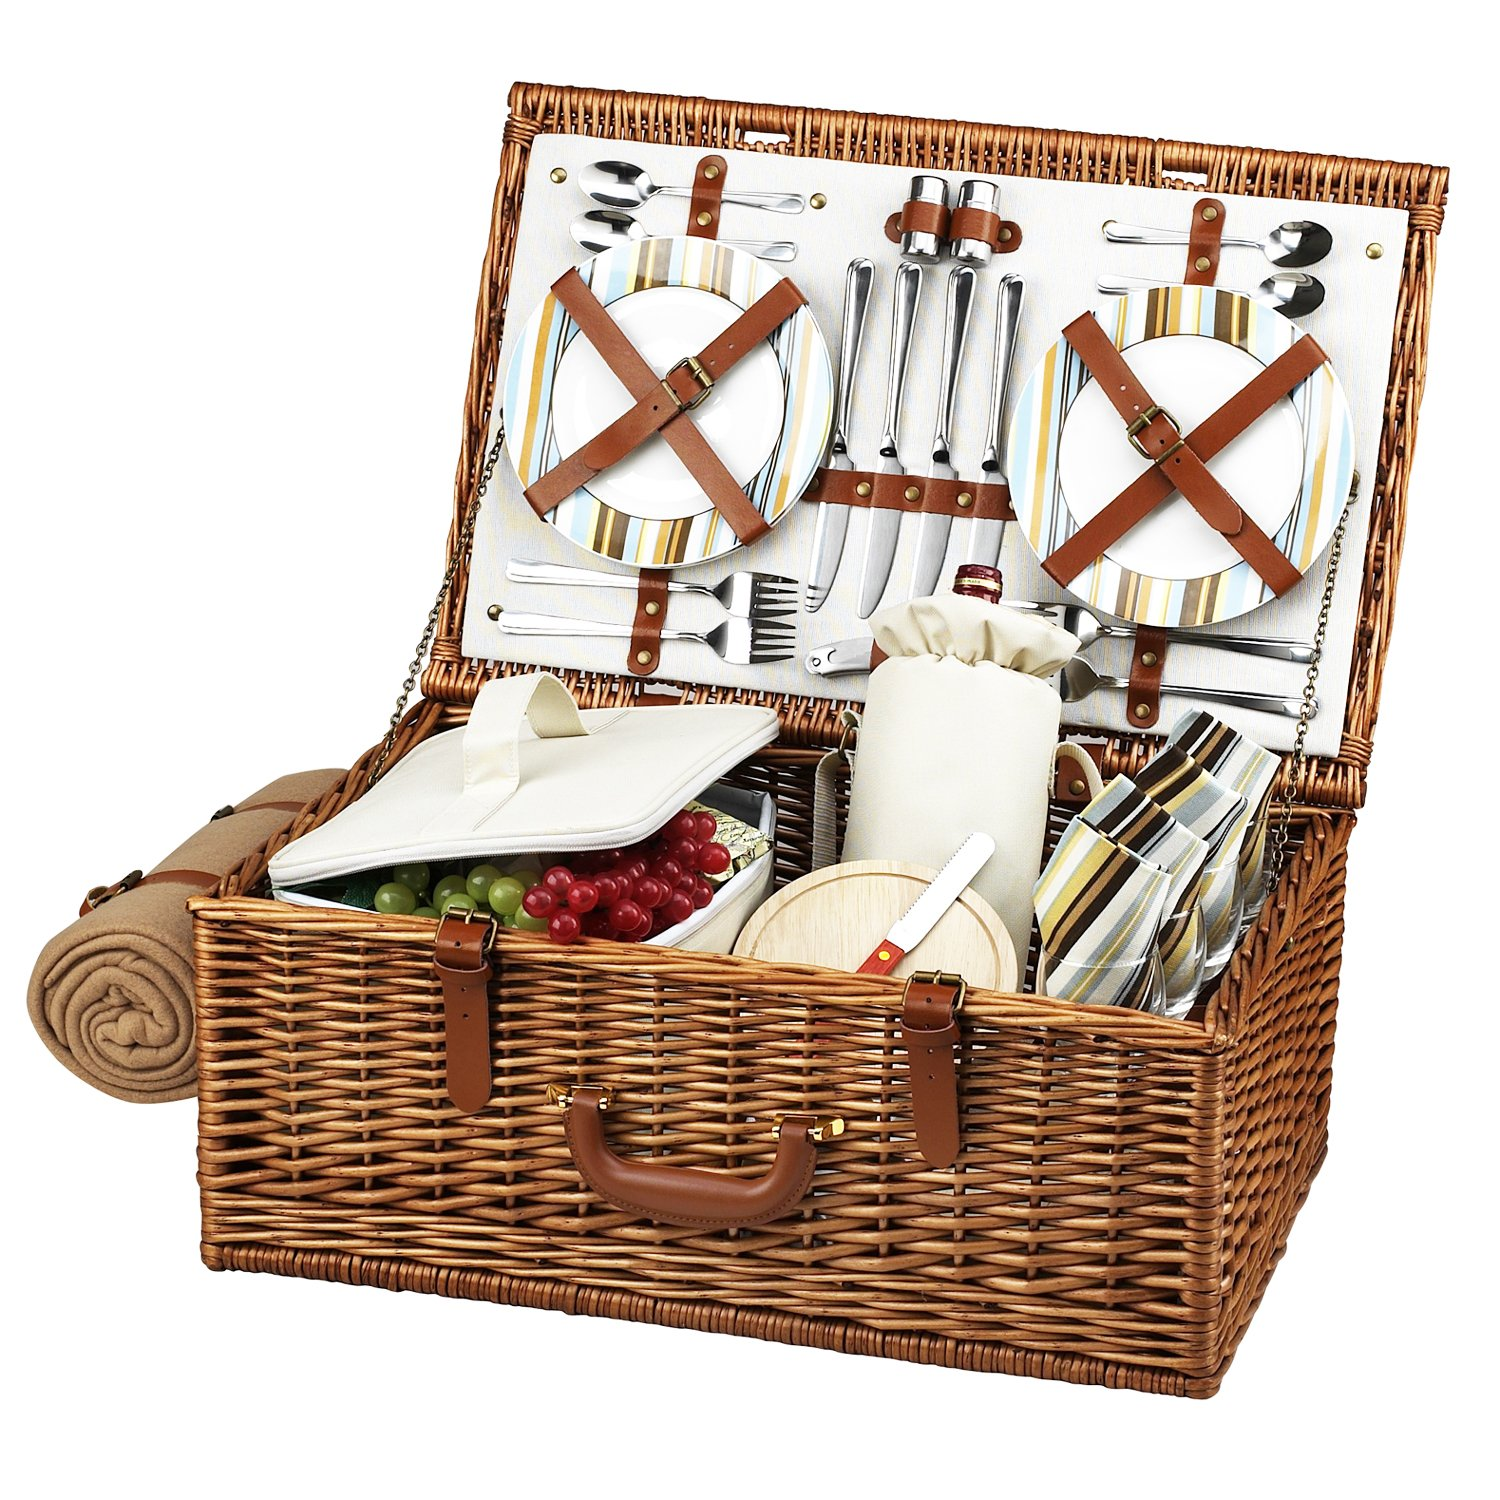 Picnic at Ascot Original Dorset English-Style Willow Picnic Basket with Service for 4 and Blanket- Designed, Assembled & Quality Approved in the USA by Picnic at Ascot